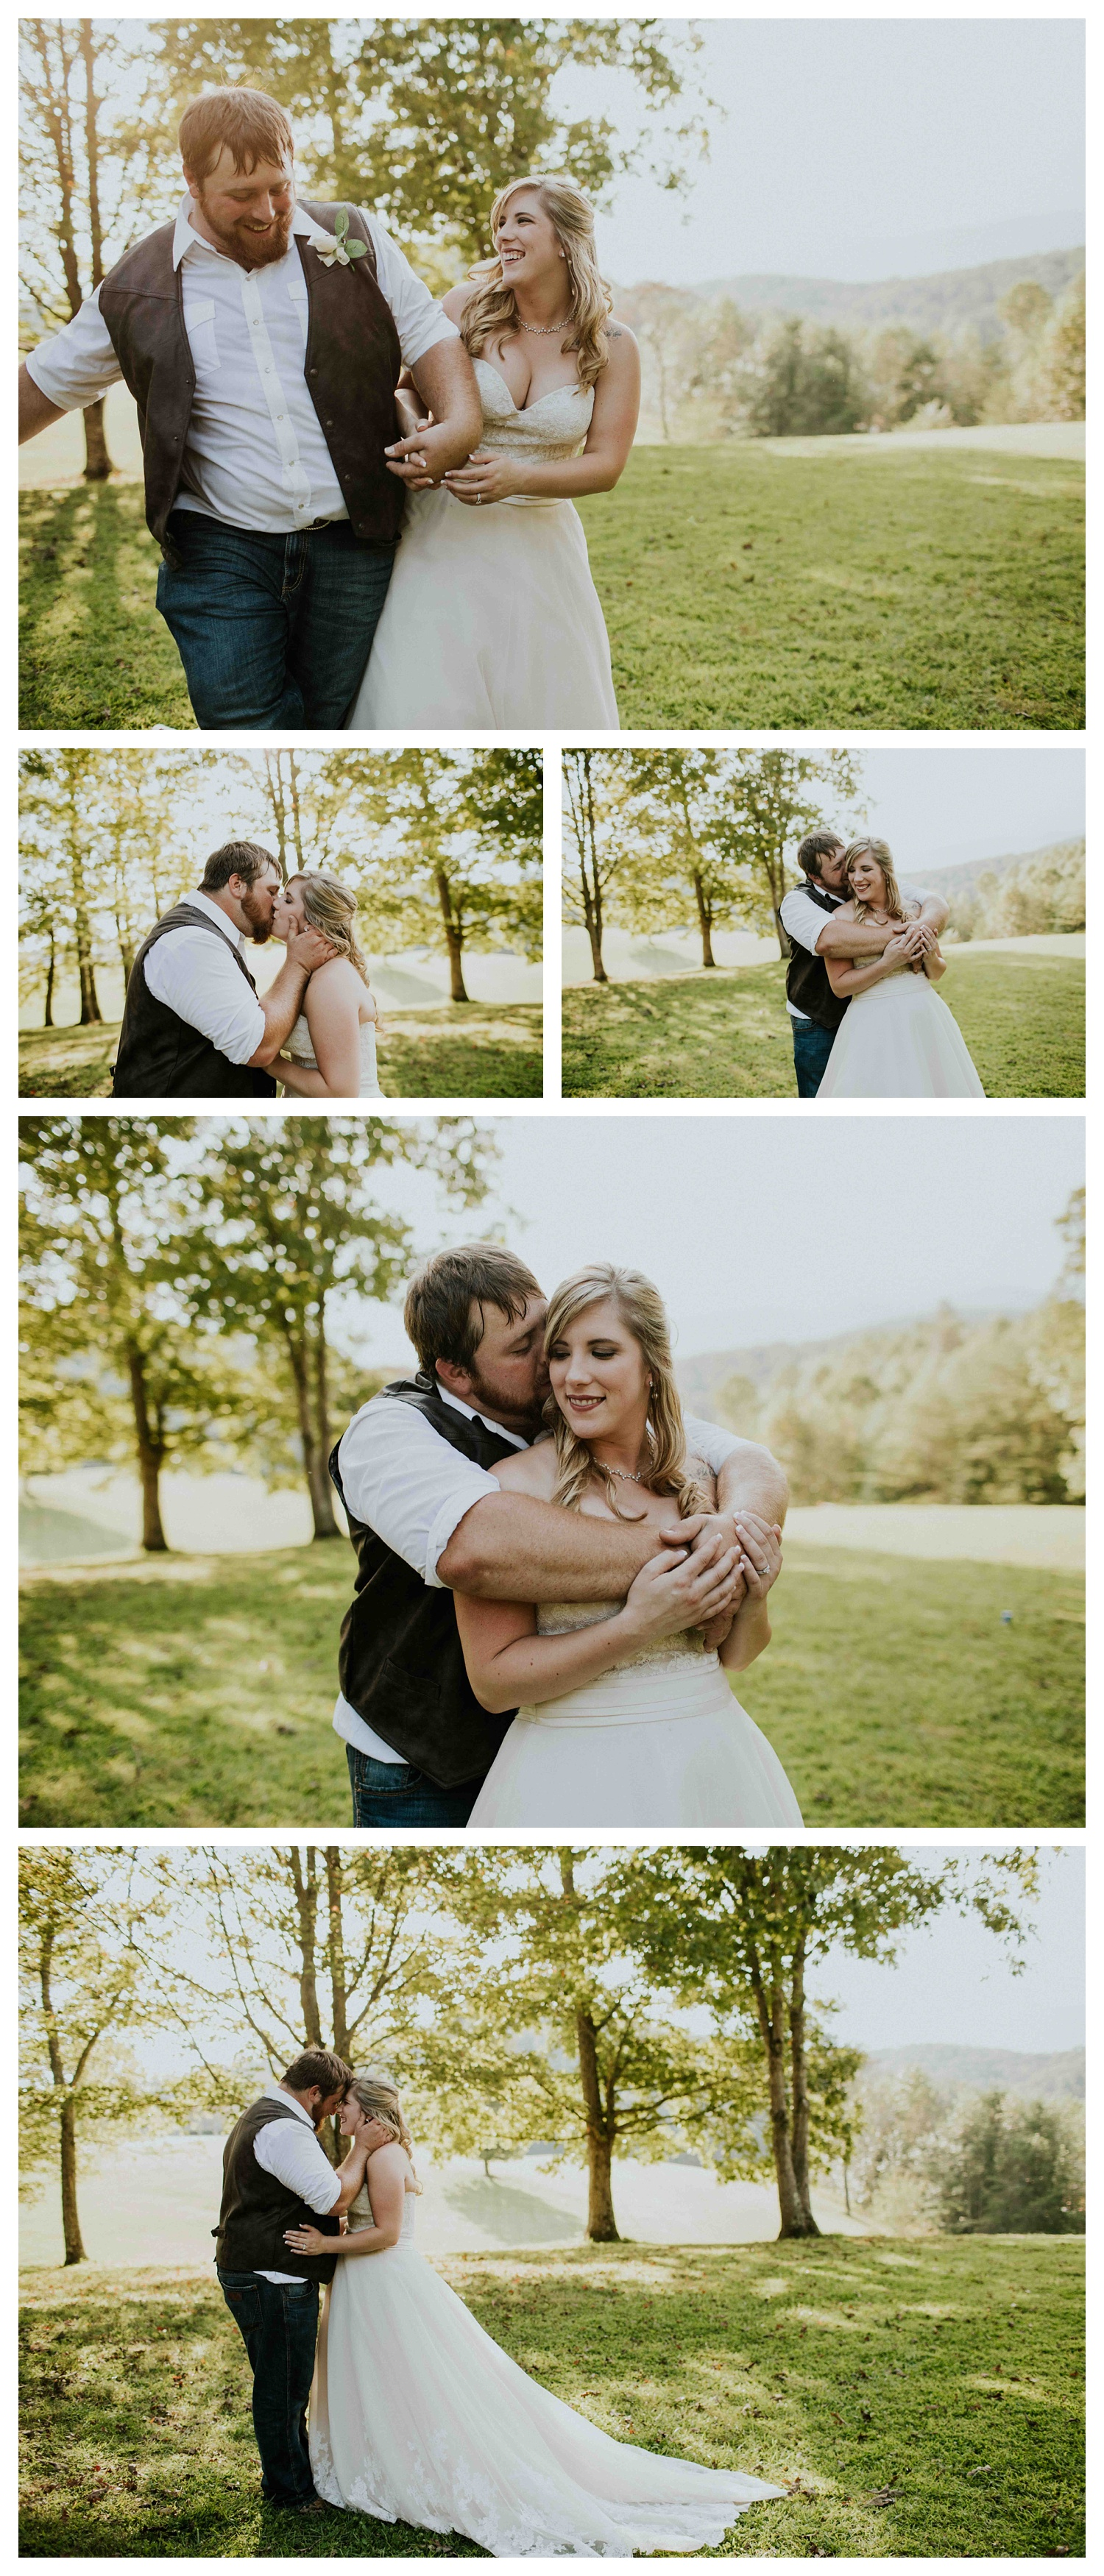 Destination Wedding Photographer R-Ranch in the Mountains Georgia Chloe Ann Photography_0010.jpg